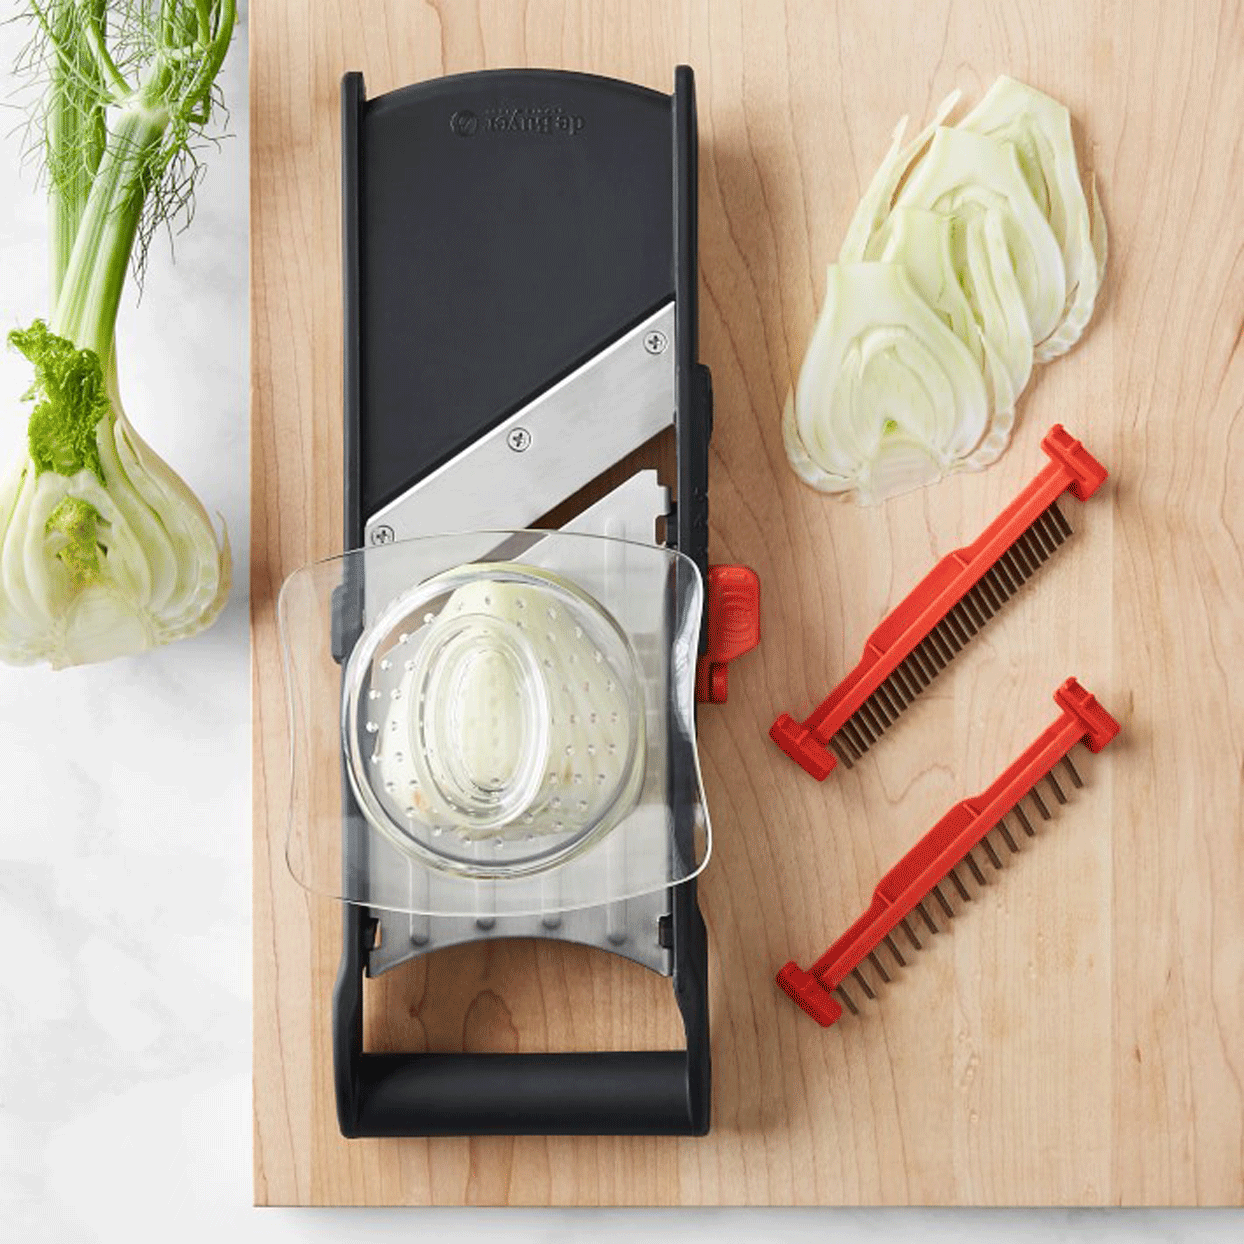 De Buyer Komi Vegetable Slicer